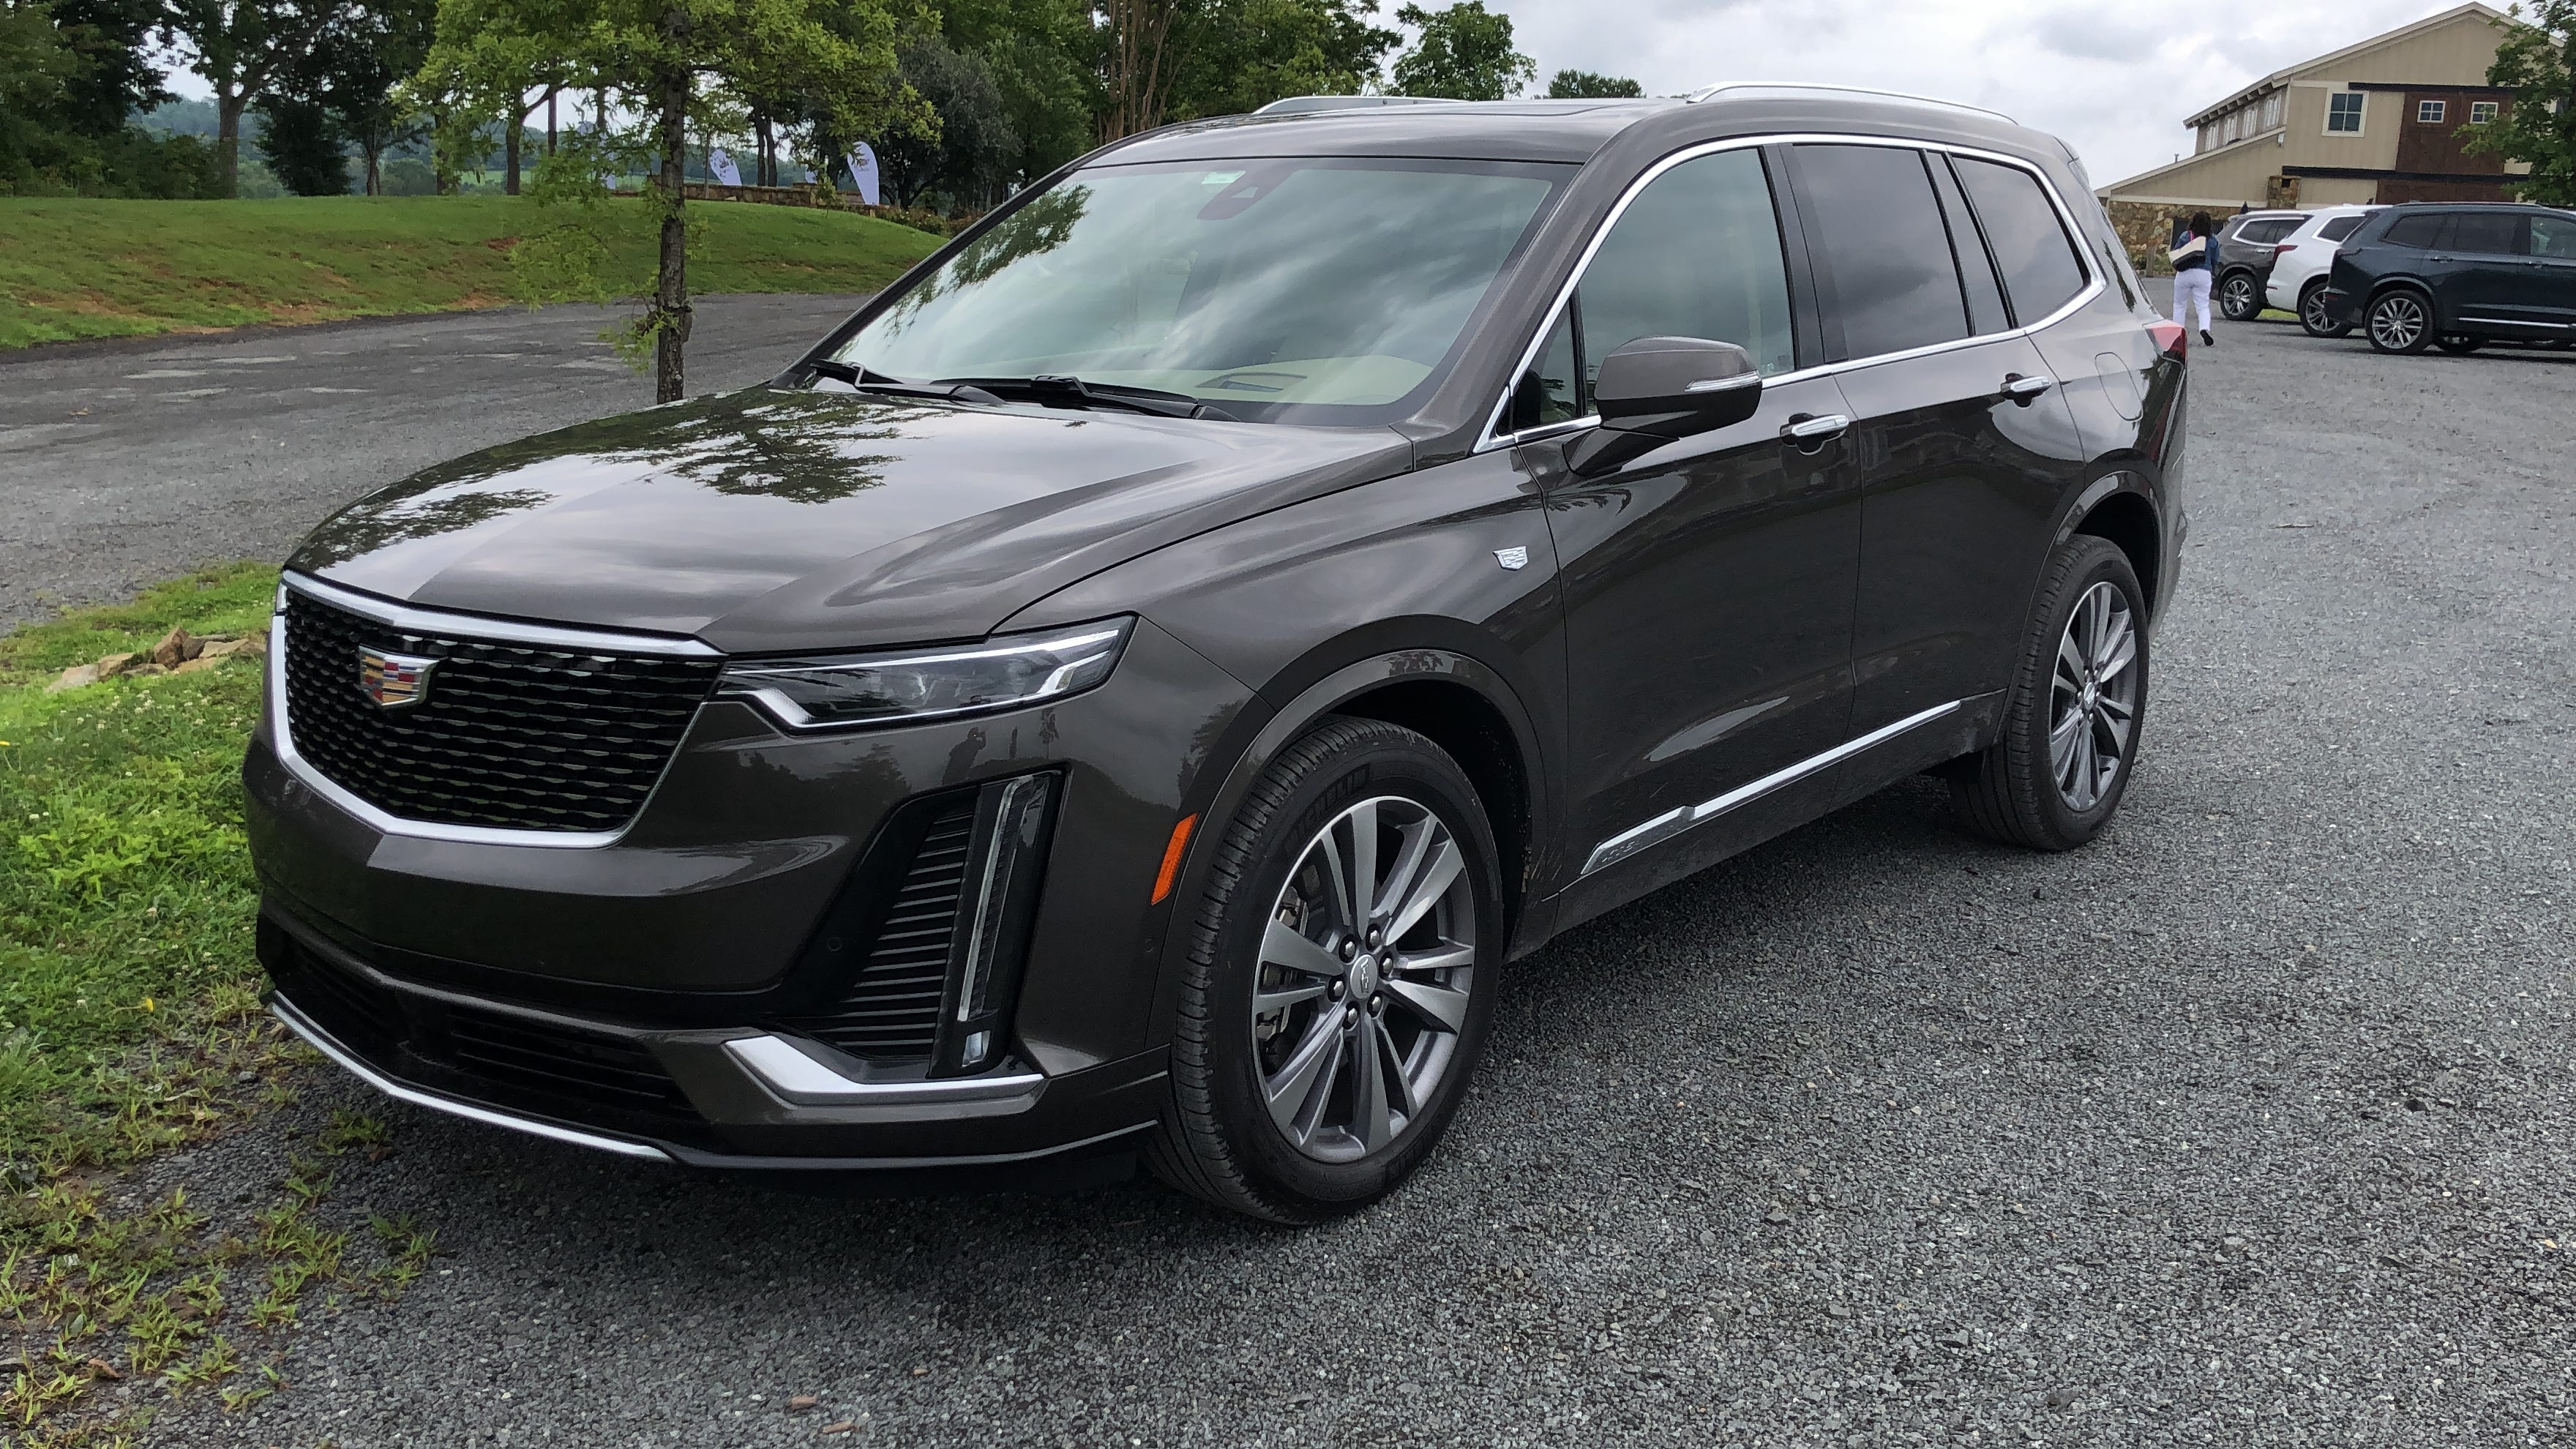 2020 Cadillac Xt6 Review 3 Row Suv Tackles Luxury Leaders